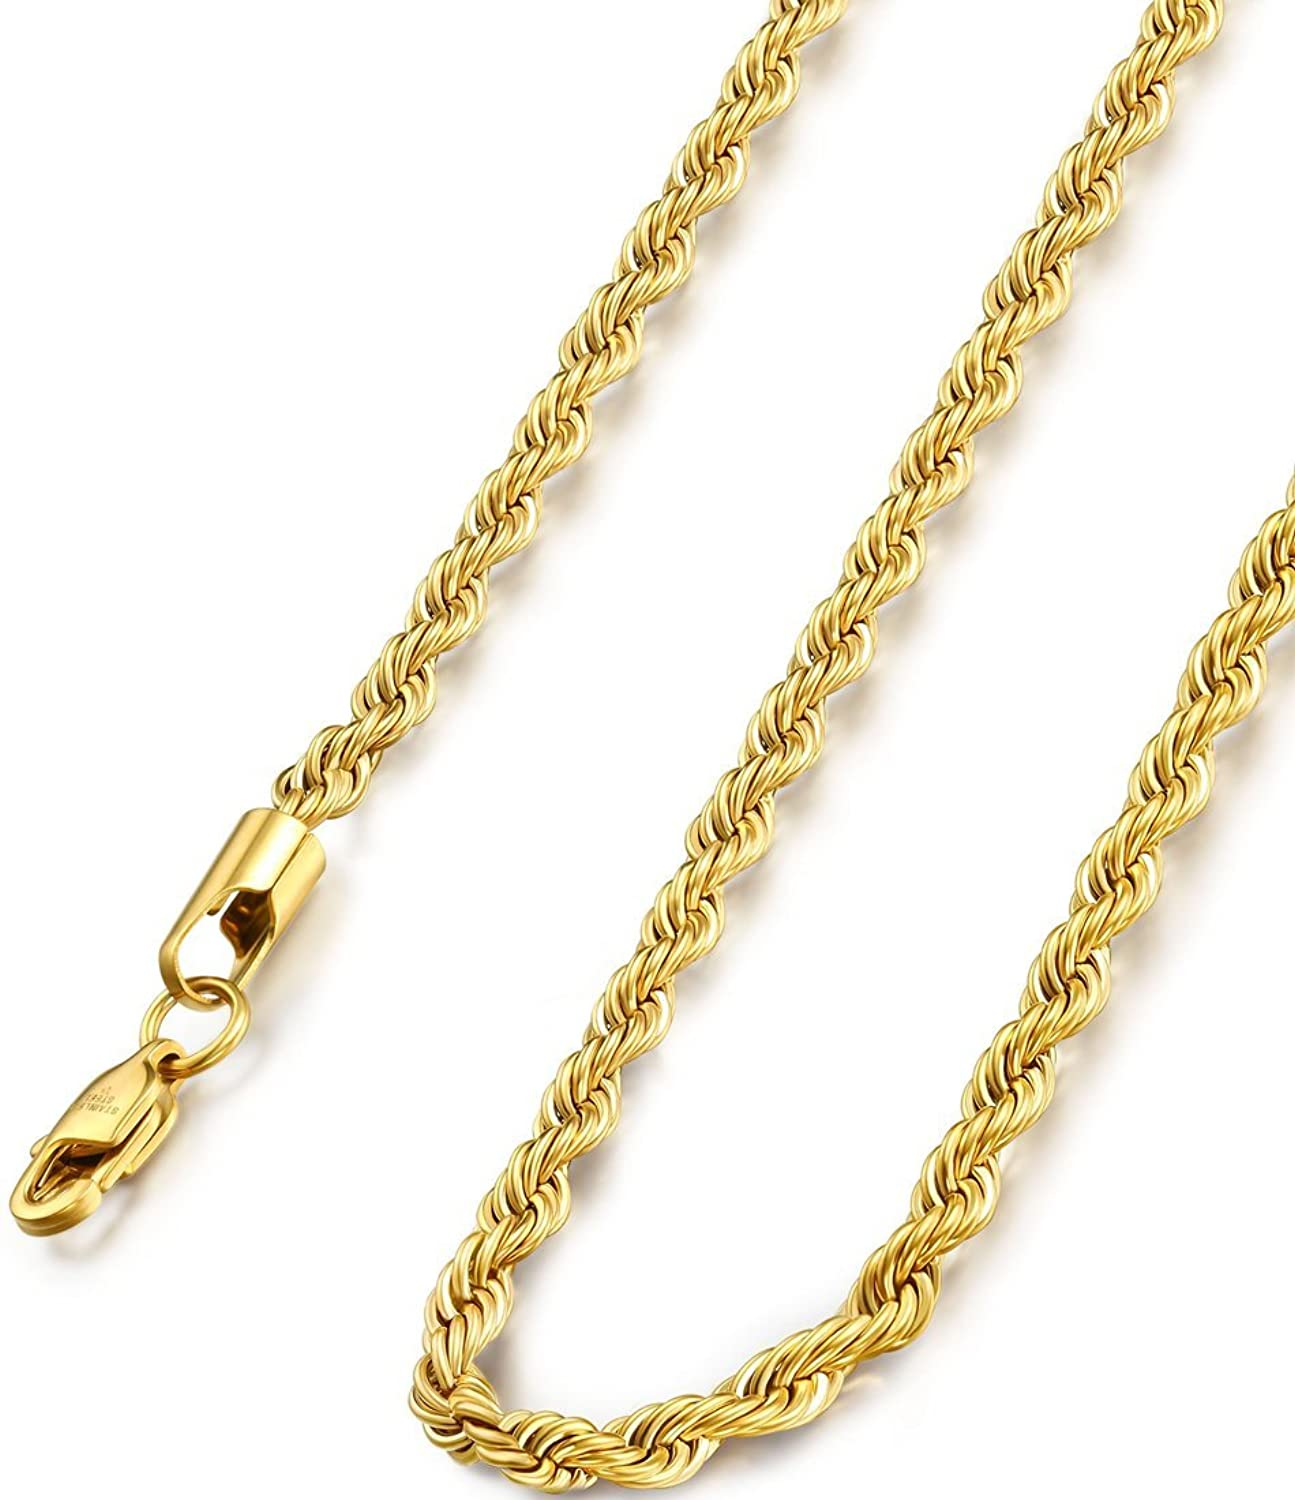 figaro fine gold mens jewelry chain necklace yellow shop high polish chains